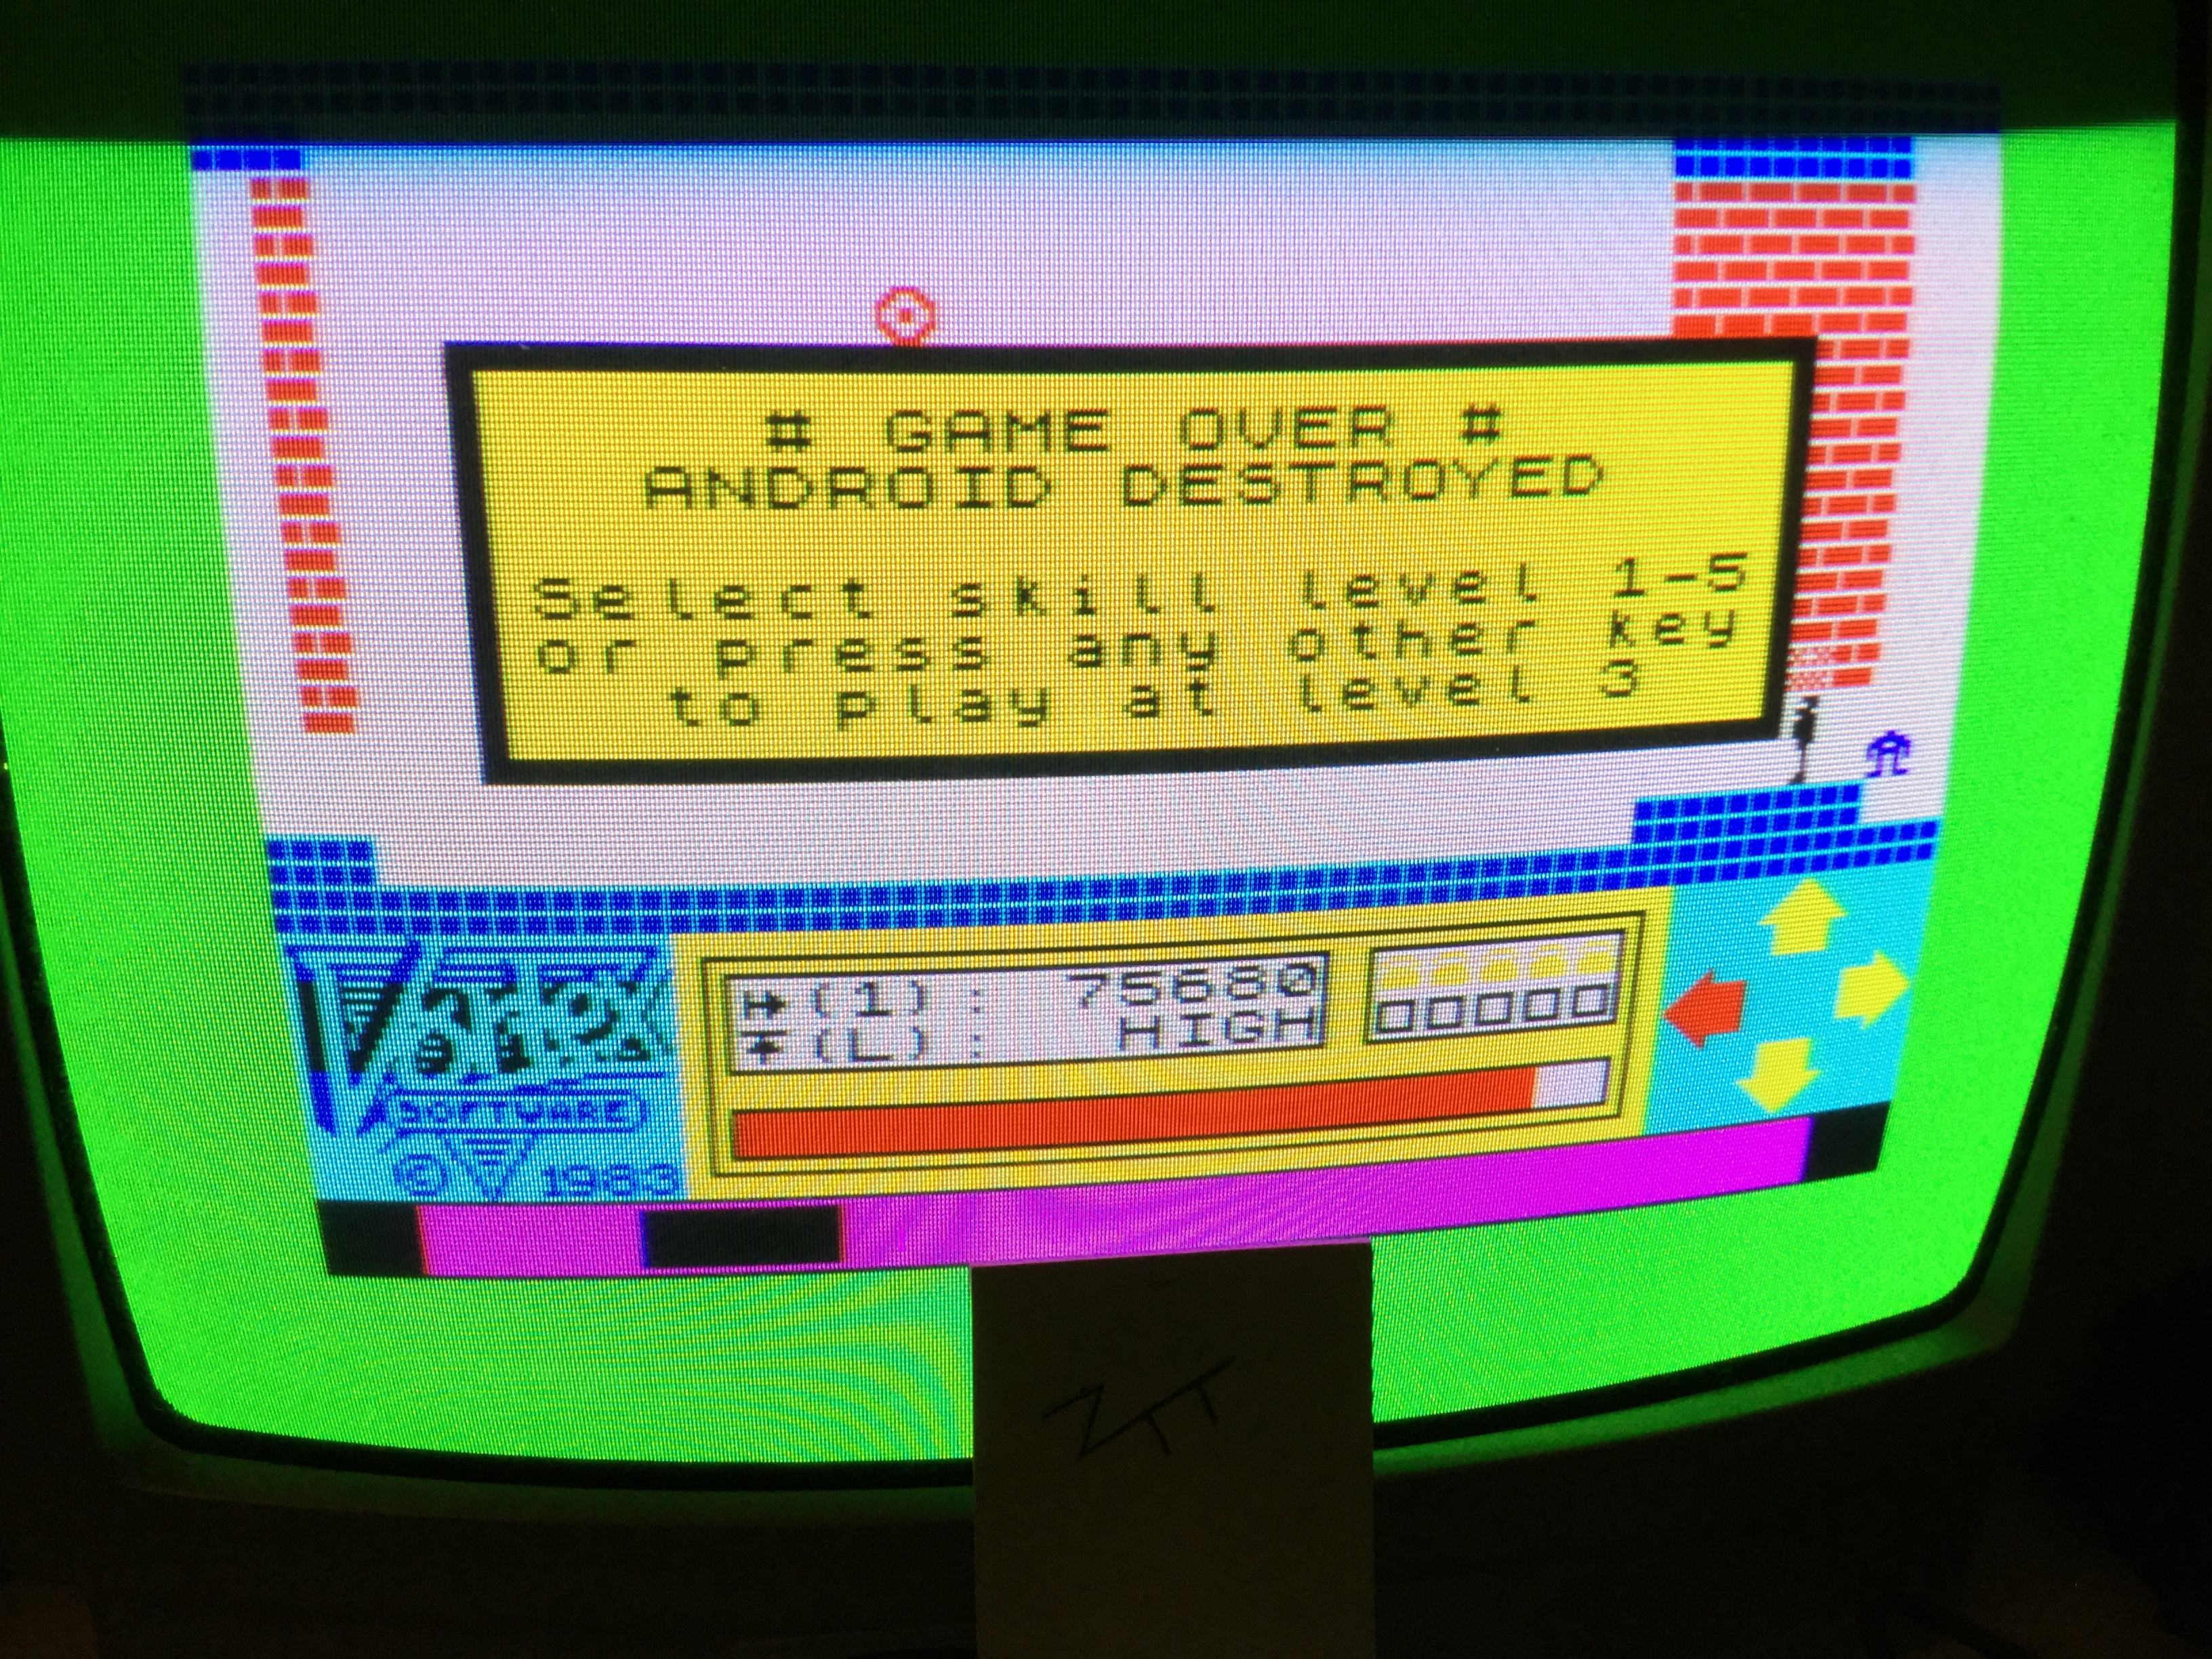 Frankie: Android One [Level 1] (ZX Spectrum) 75,680 points on 2017-12-23 07:56:57